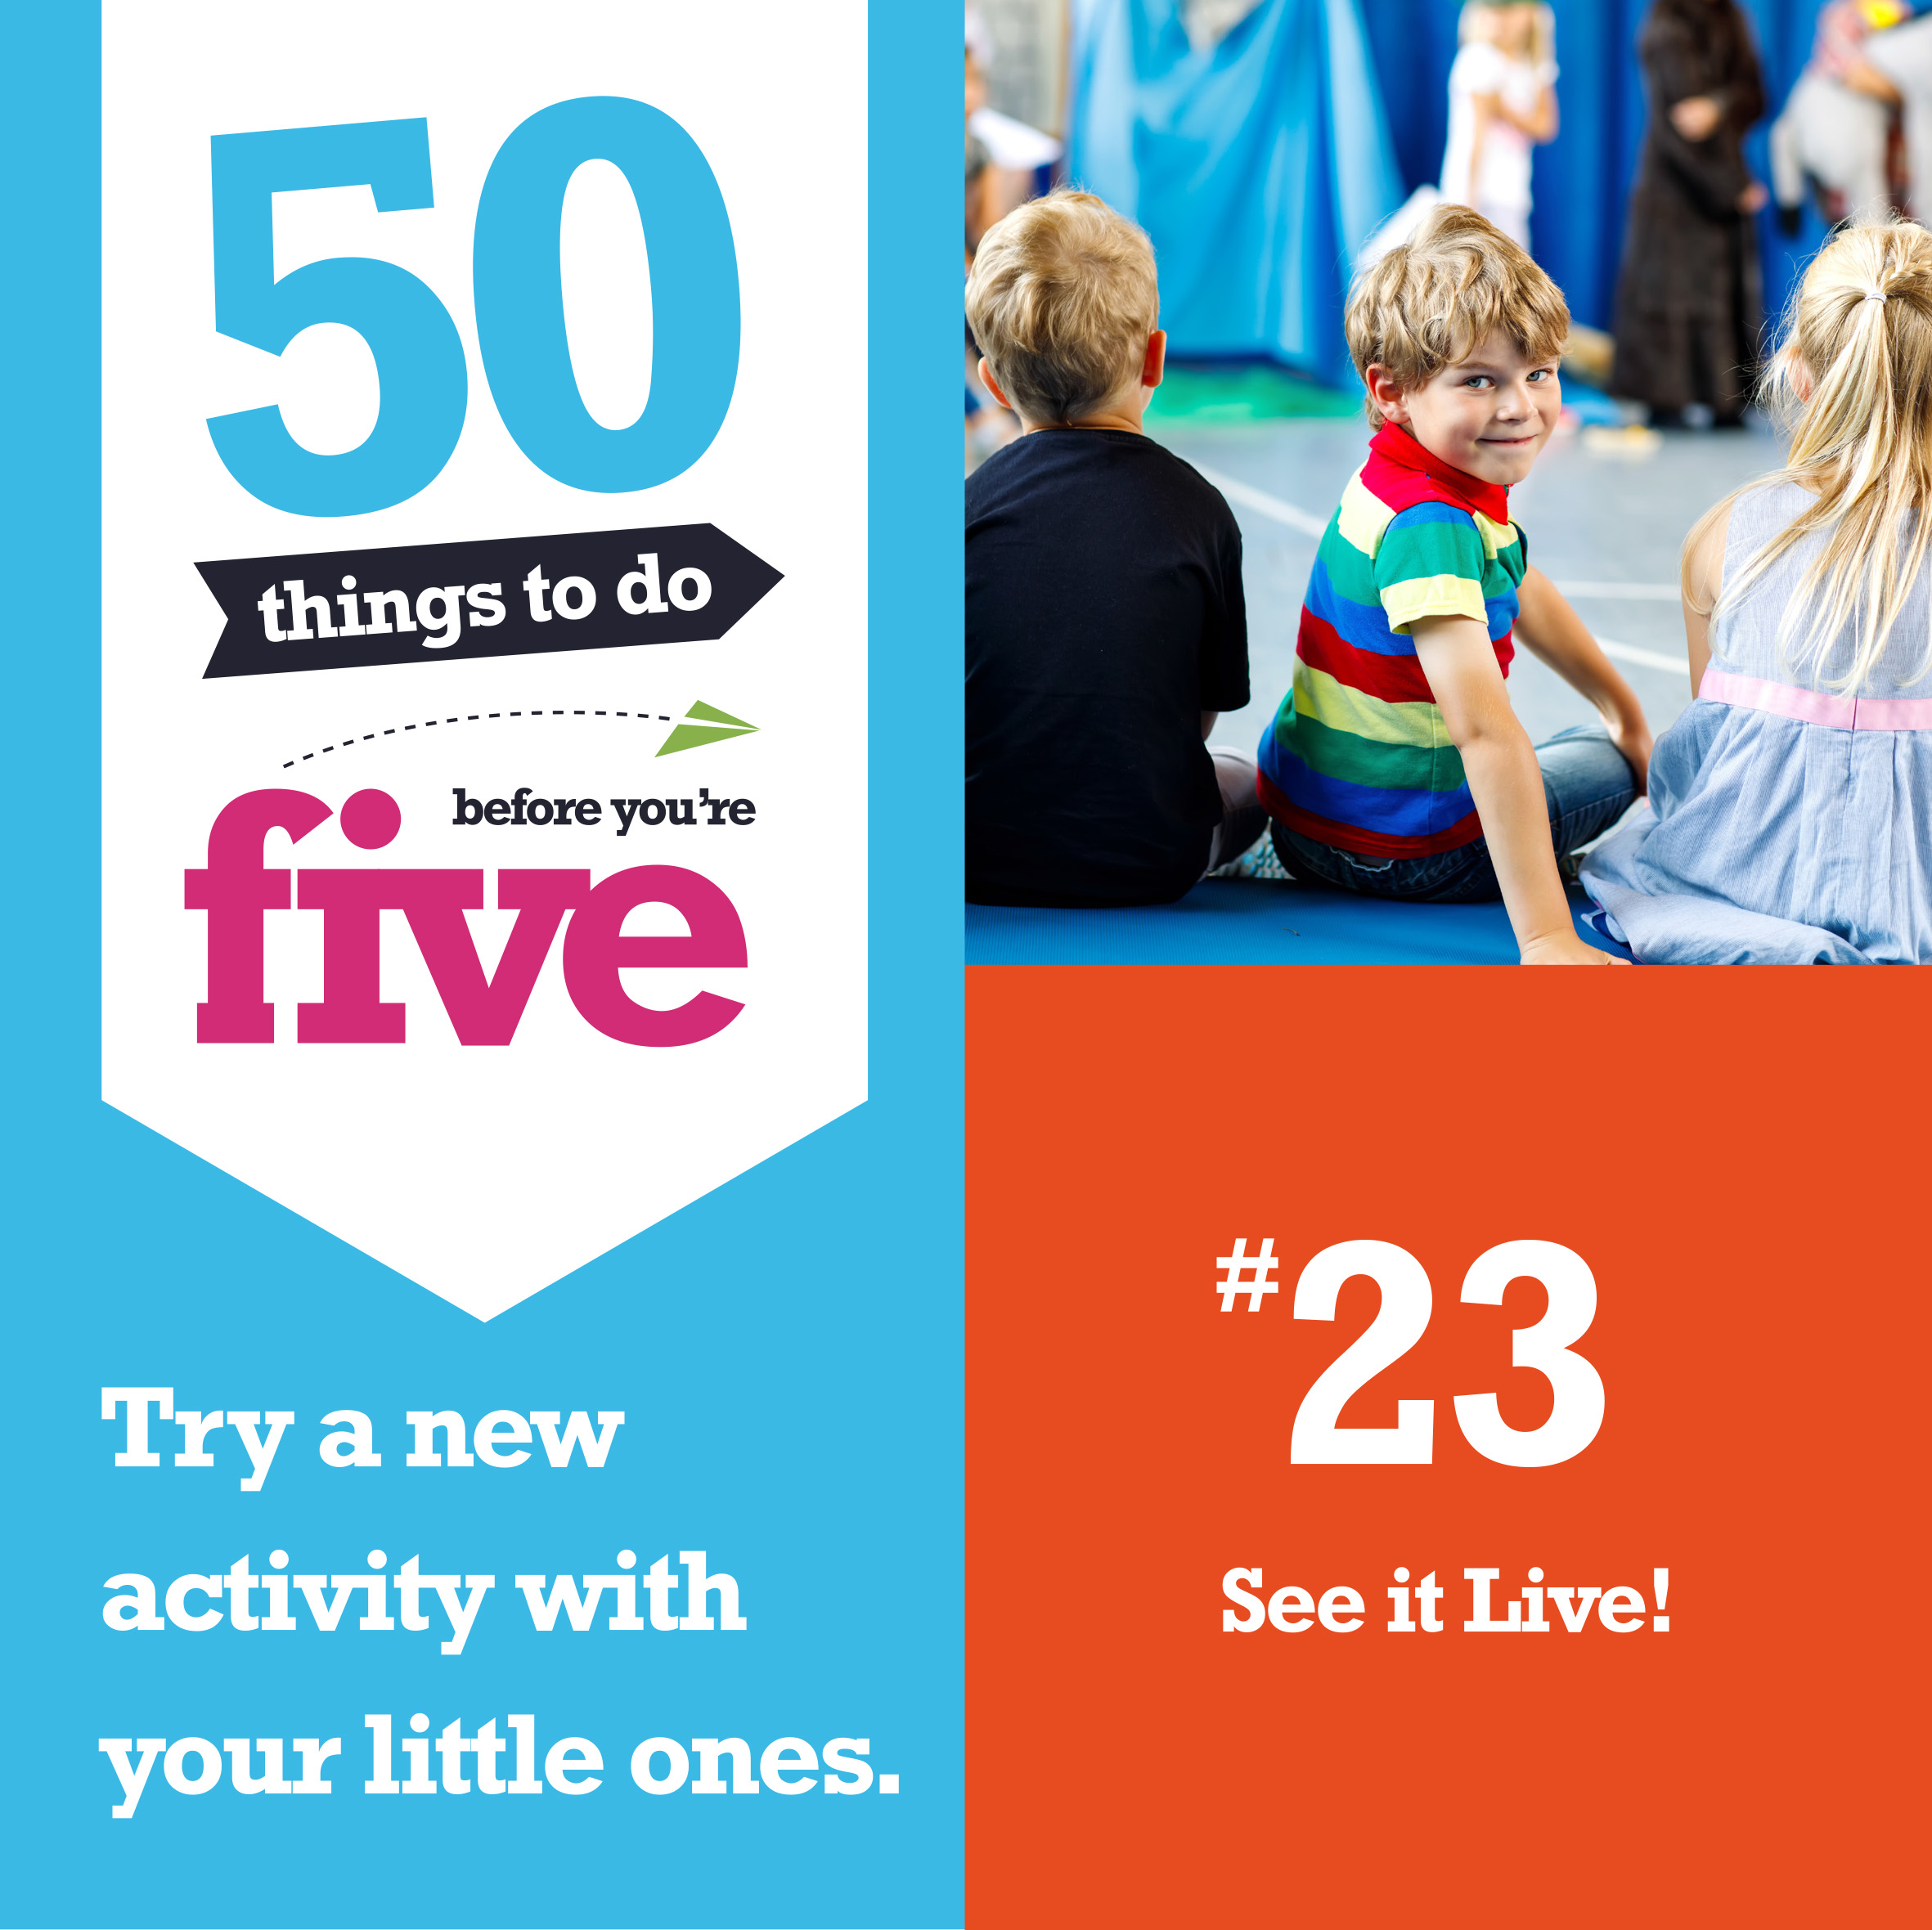 Image of activity 23 from 50 things app